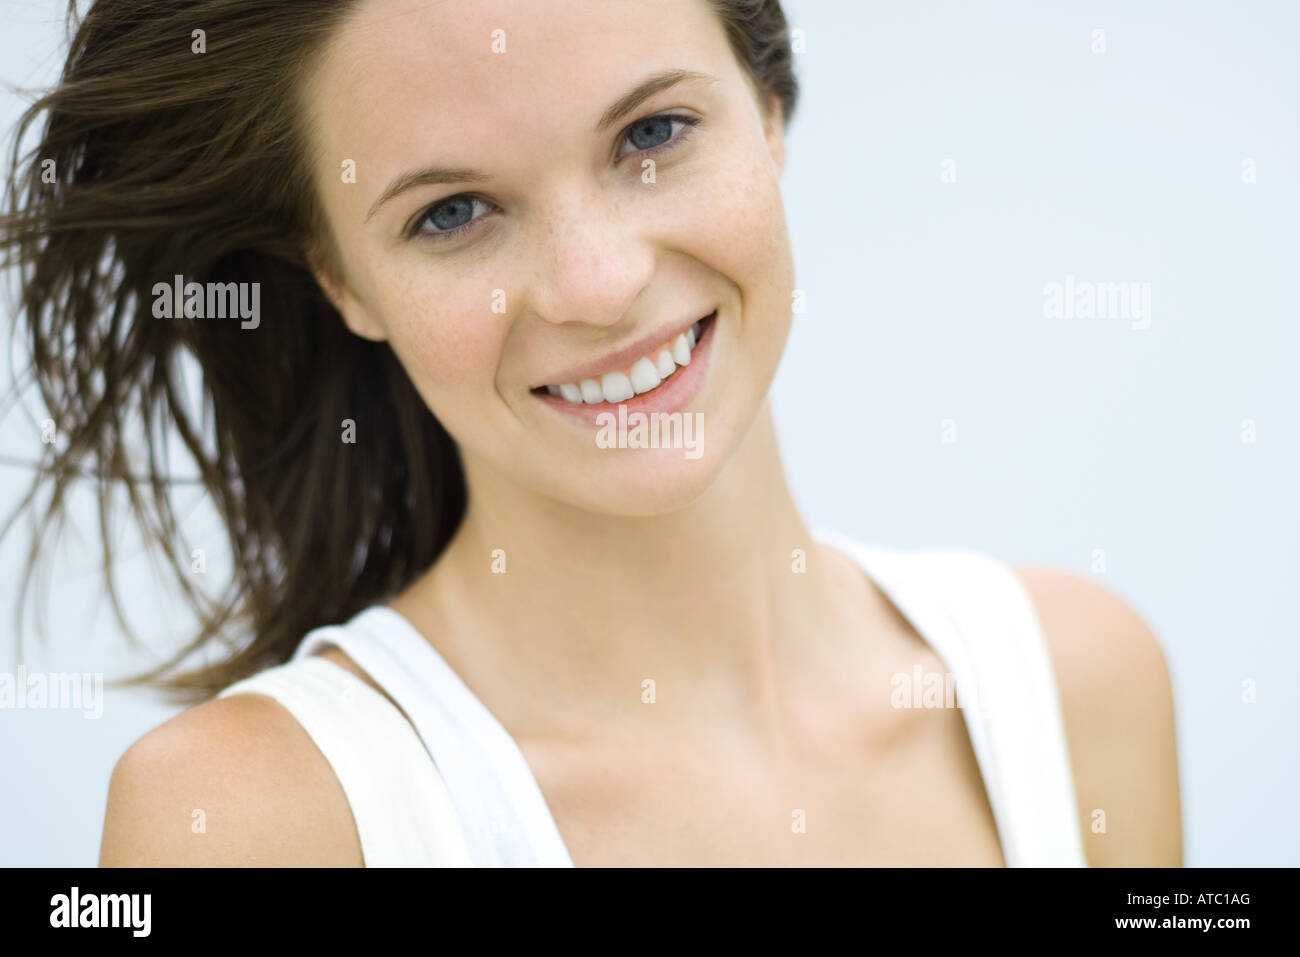 Teenage girl smiling at camera, hair tousled by breeze, portrait - Stock Image